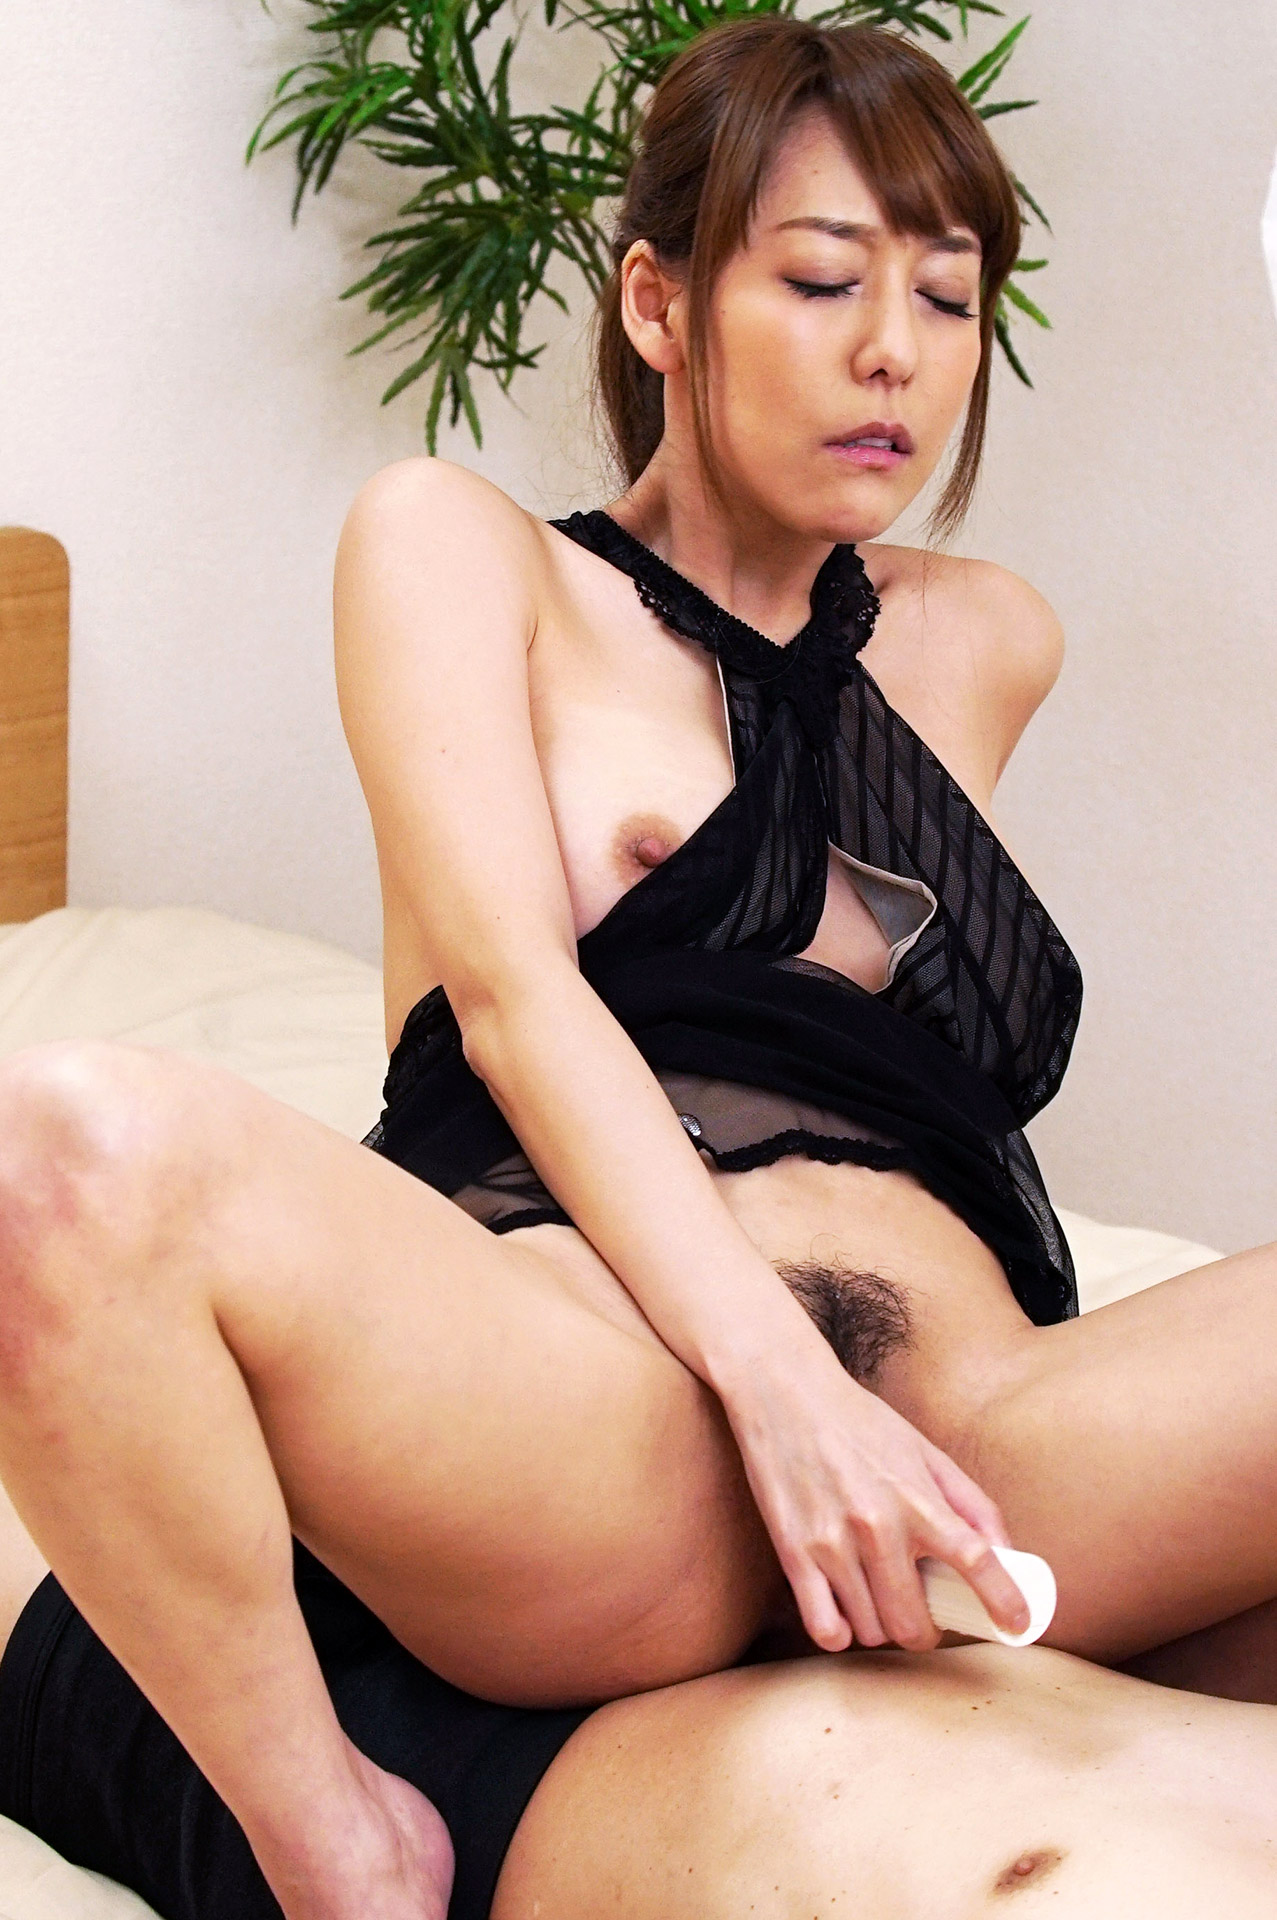 Squirting lover asagiri akari wants to make date with you 8